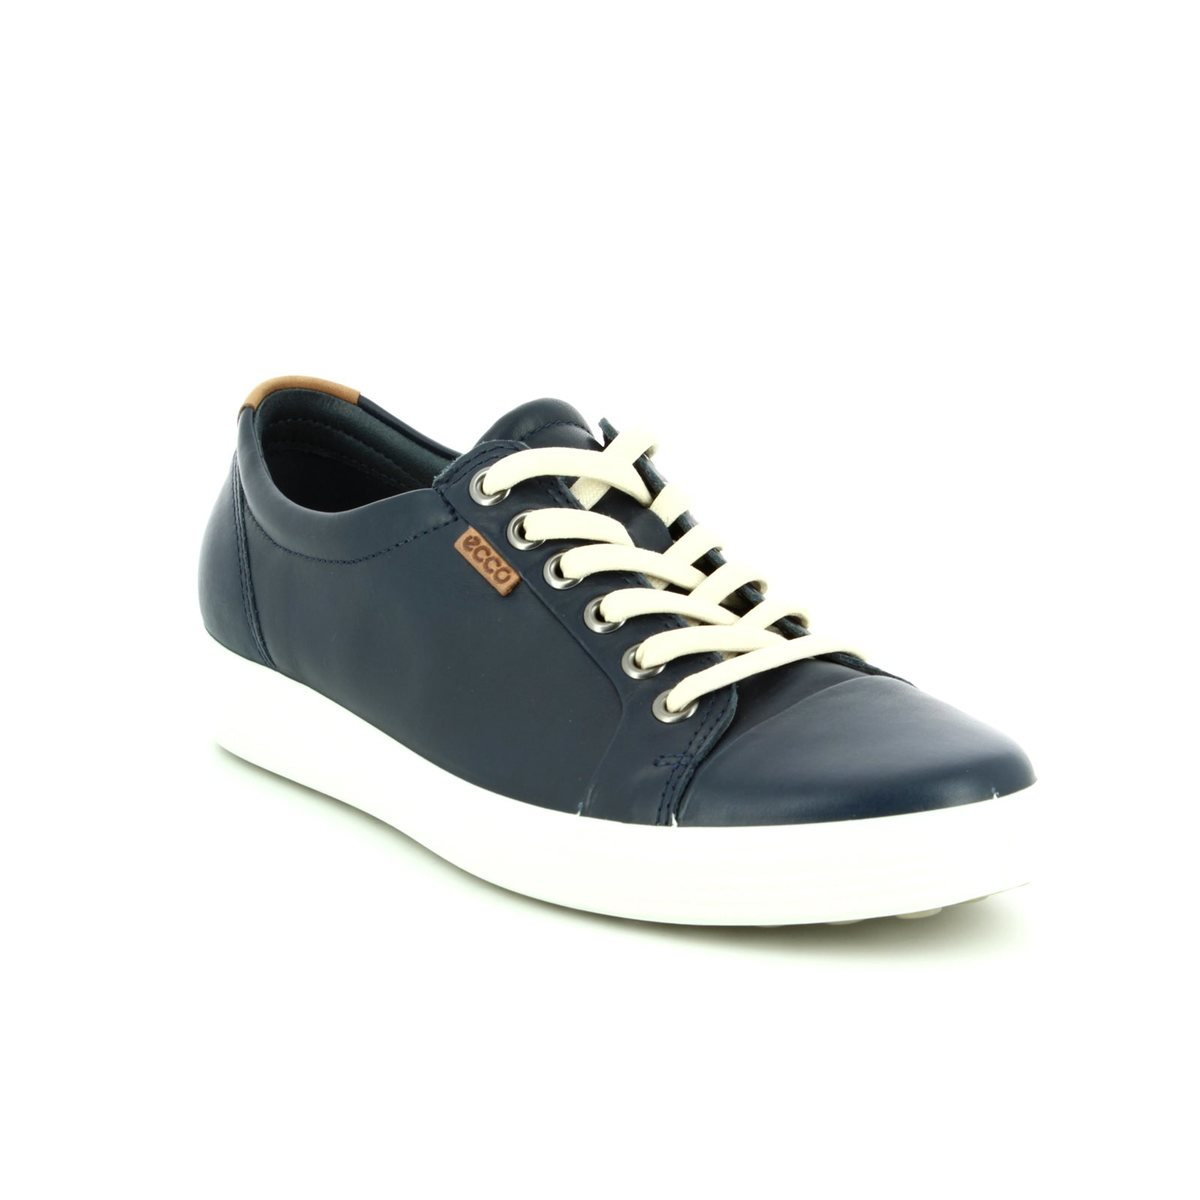 9ea30742f64a ECCO Trainers - Navy - 430003 01038 SOFT 7